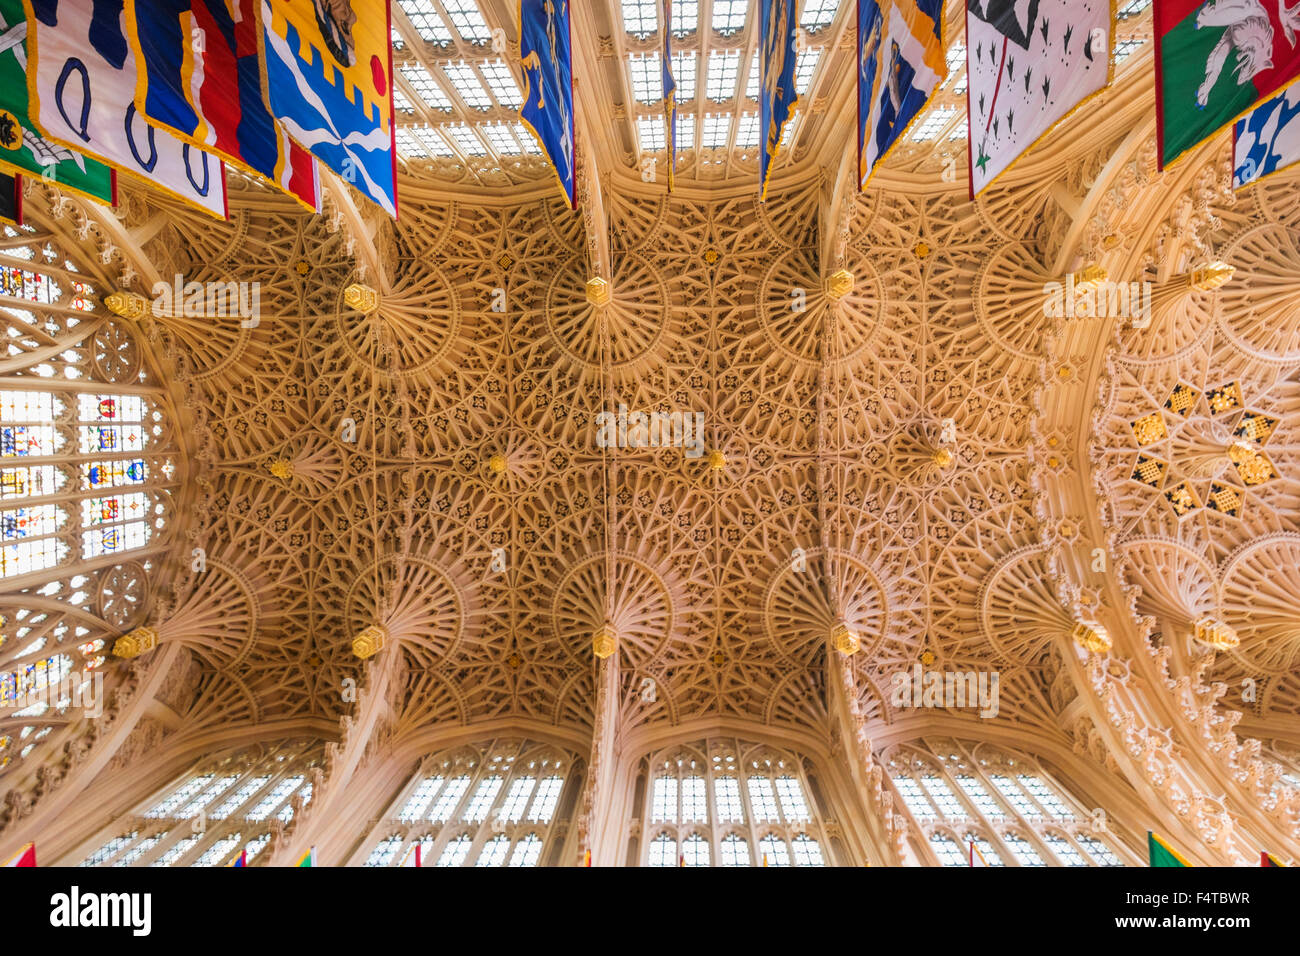 England, London, Westminster Abbey, Ceiling of Henry VII, 's Lady Chapel - Stock Image